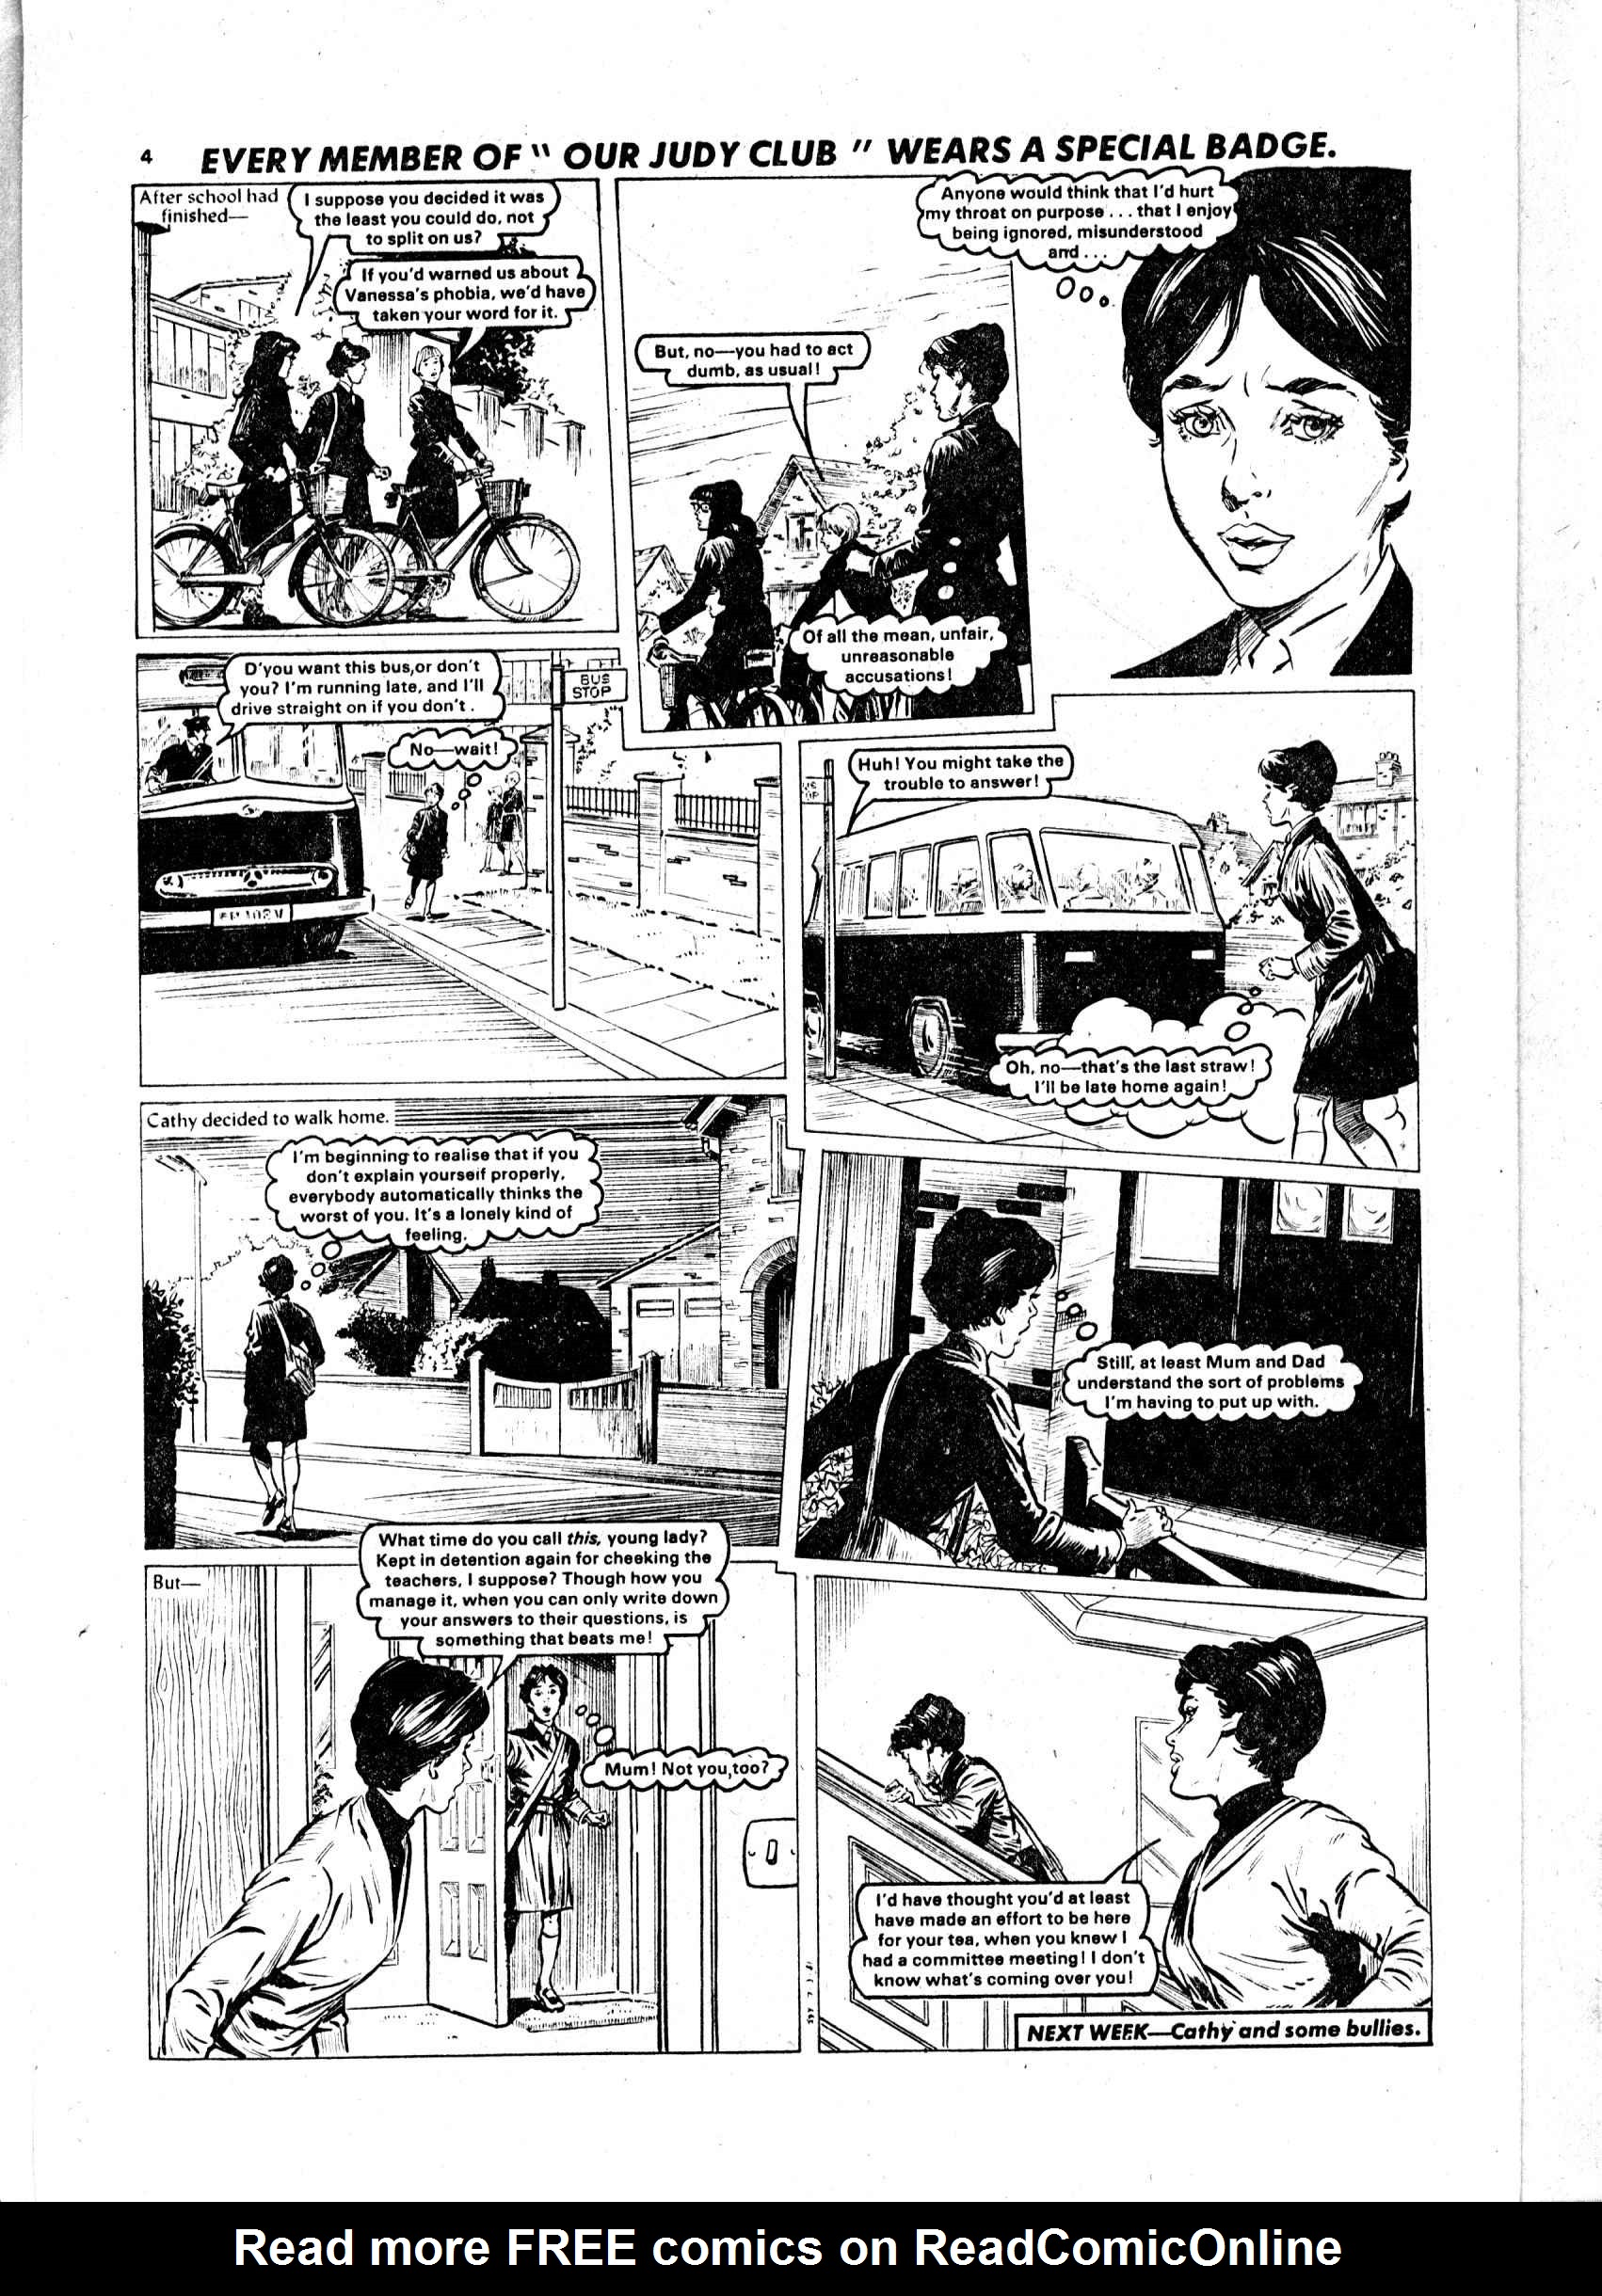 Read online Judy comic -  Issue #4 - 4